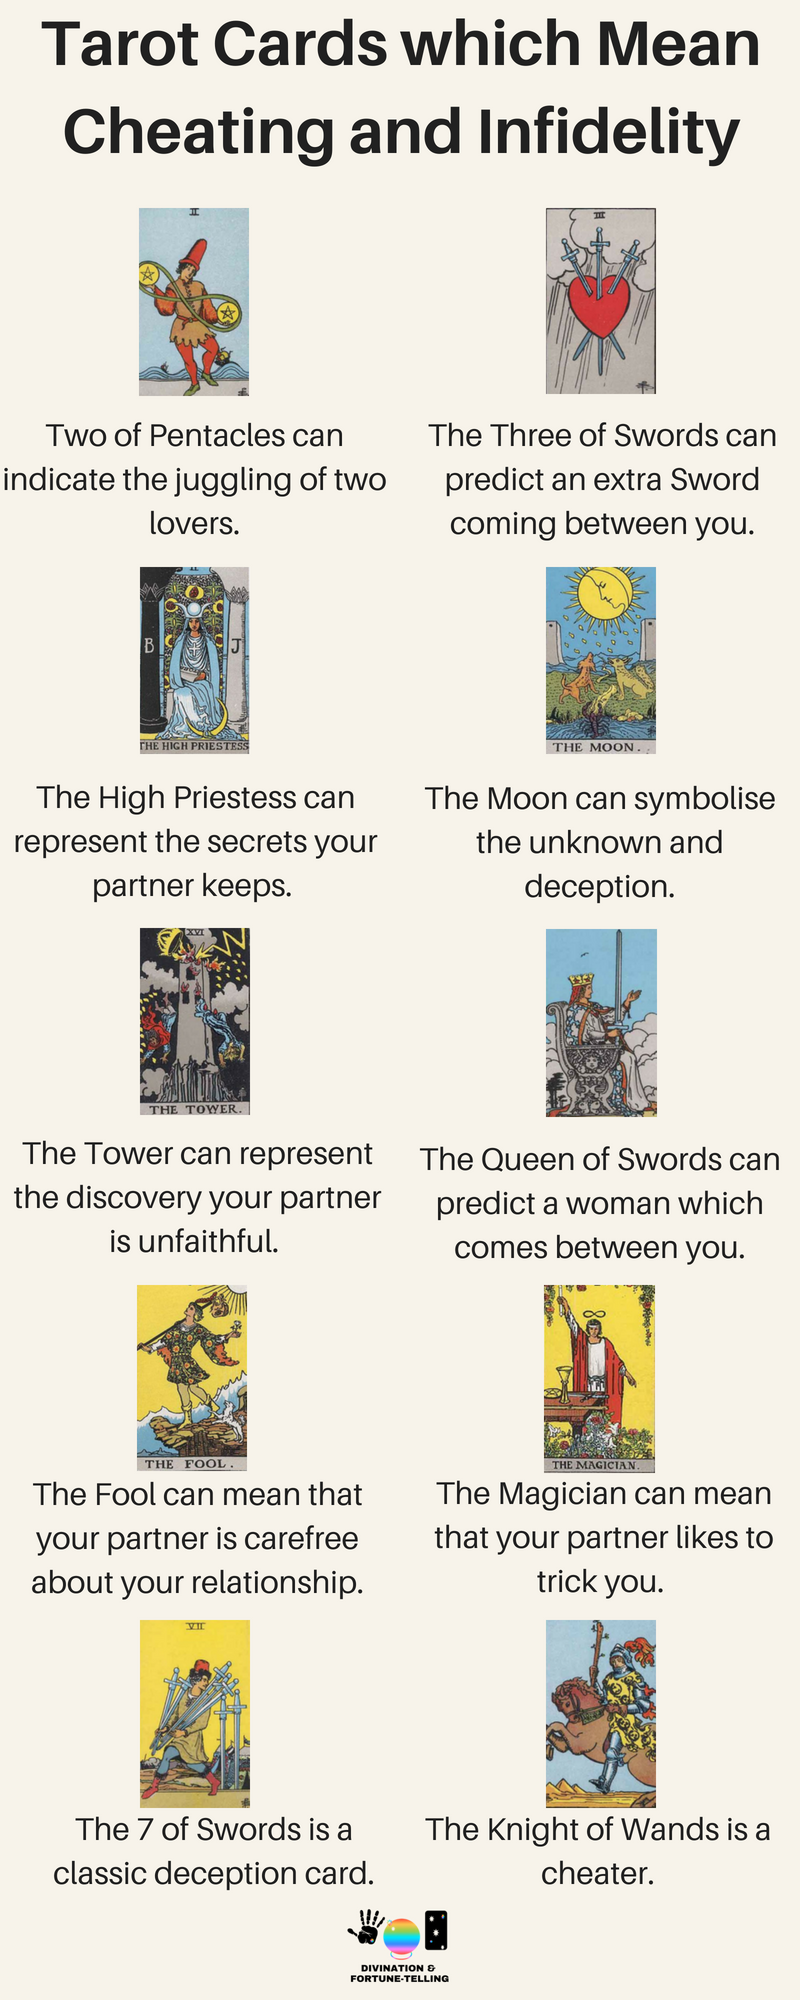 The top Tarot cards which mean cheating and infidelity in readings for beginners! If you're performing love, relationship and romance readings, this illustration can give you tips. Deck is the Rider Waite Tarot with The Moon, The High Priestess, The Fool and The Magician. - Divination and Fortune Telling